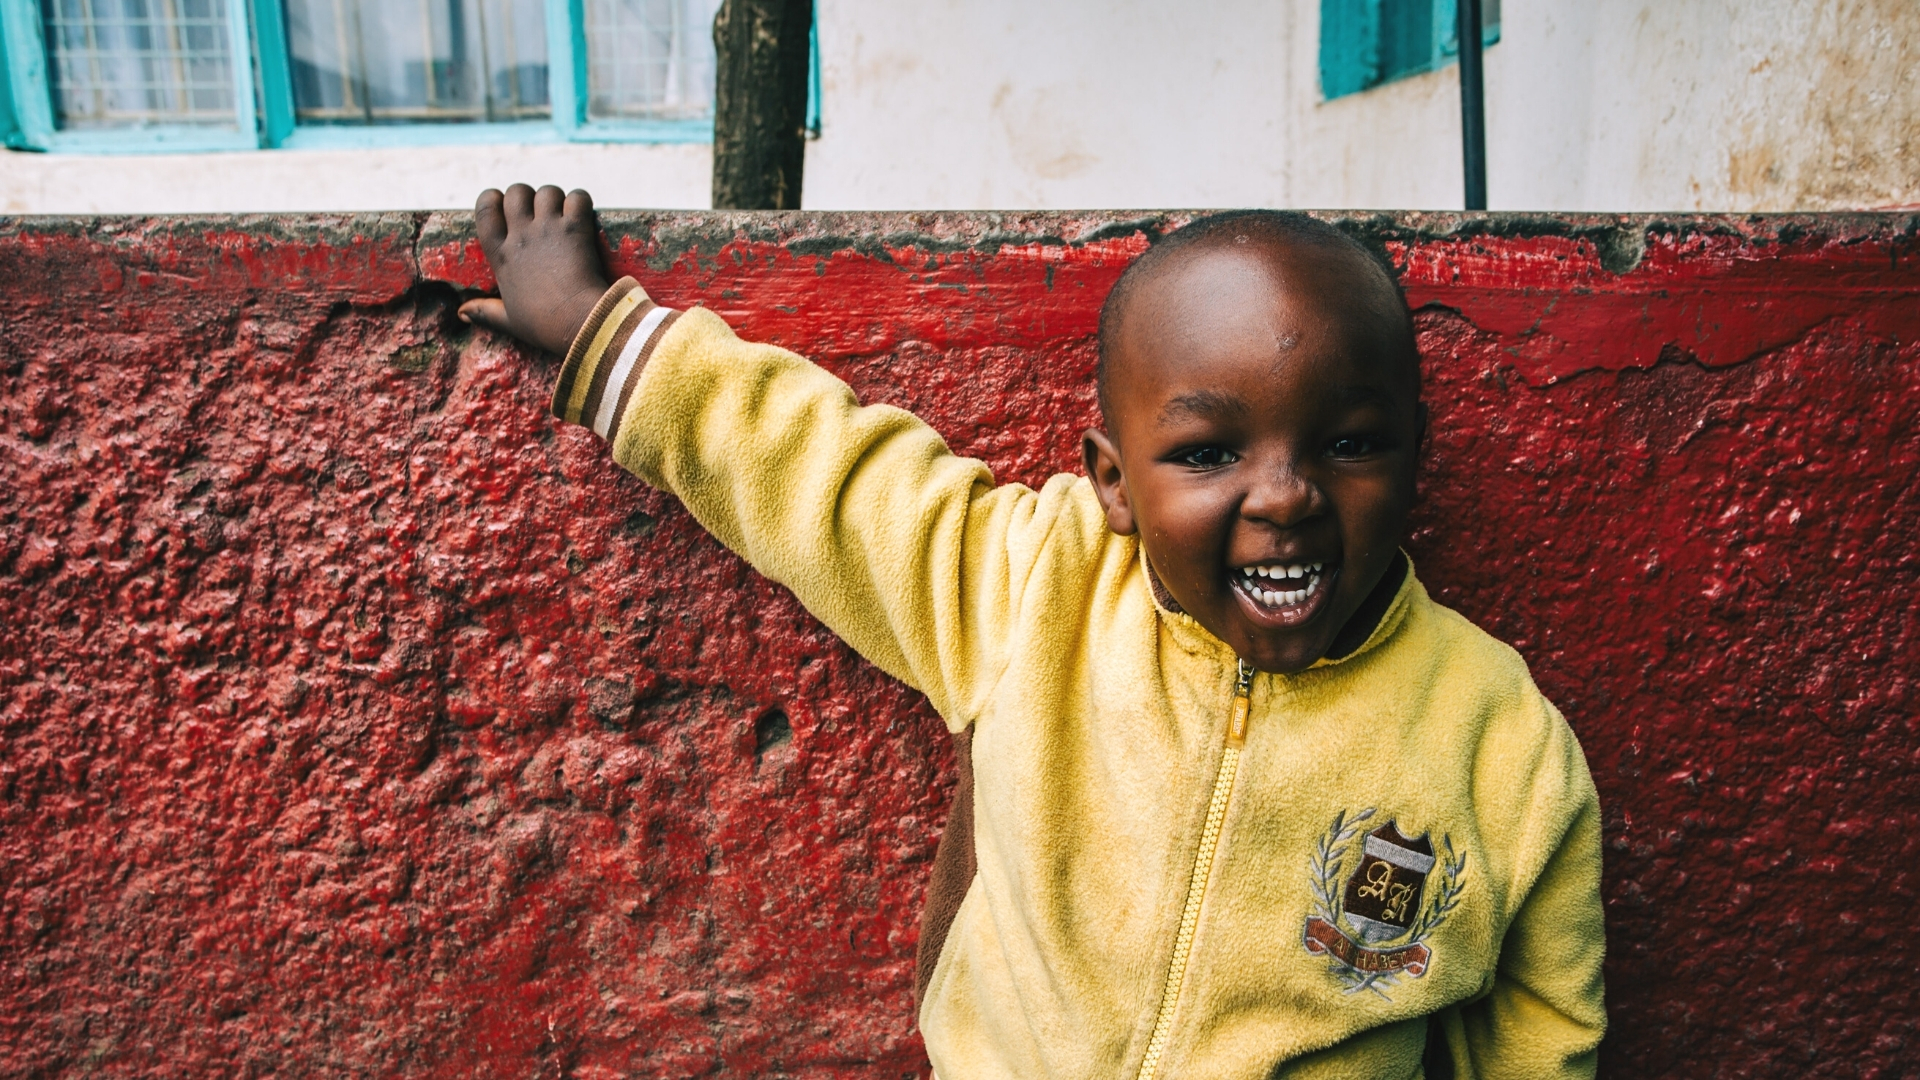 Love my non-christian neighbour - a little boy in Africa wearing a yellow top leaning against a red wall